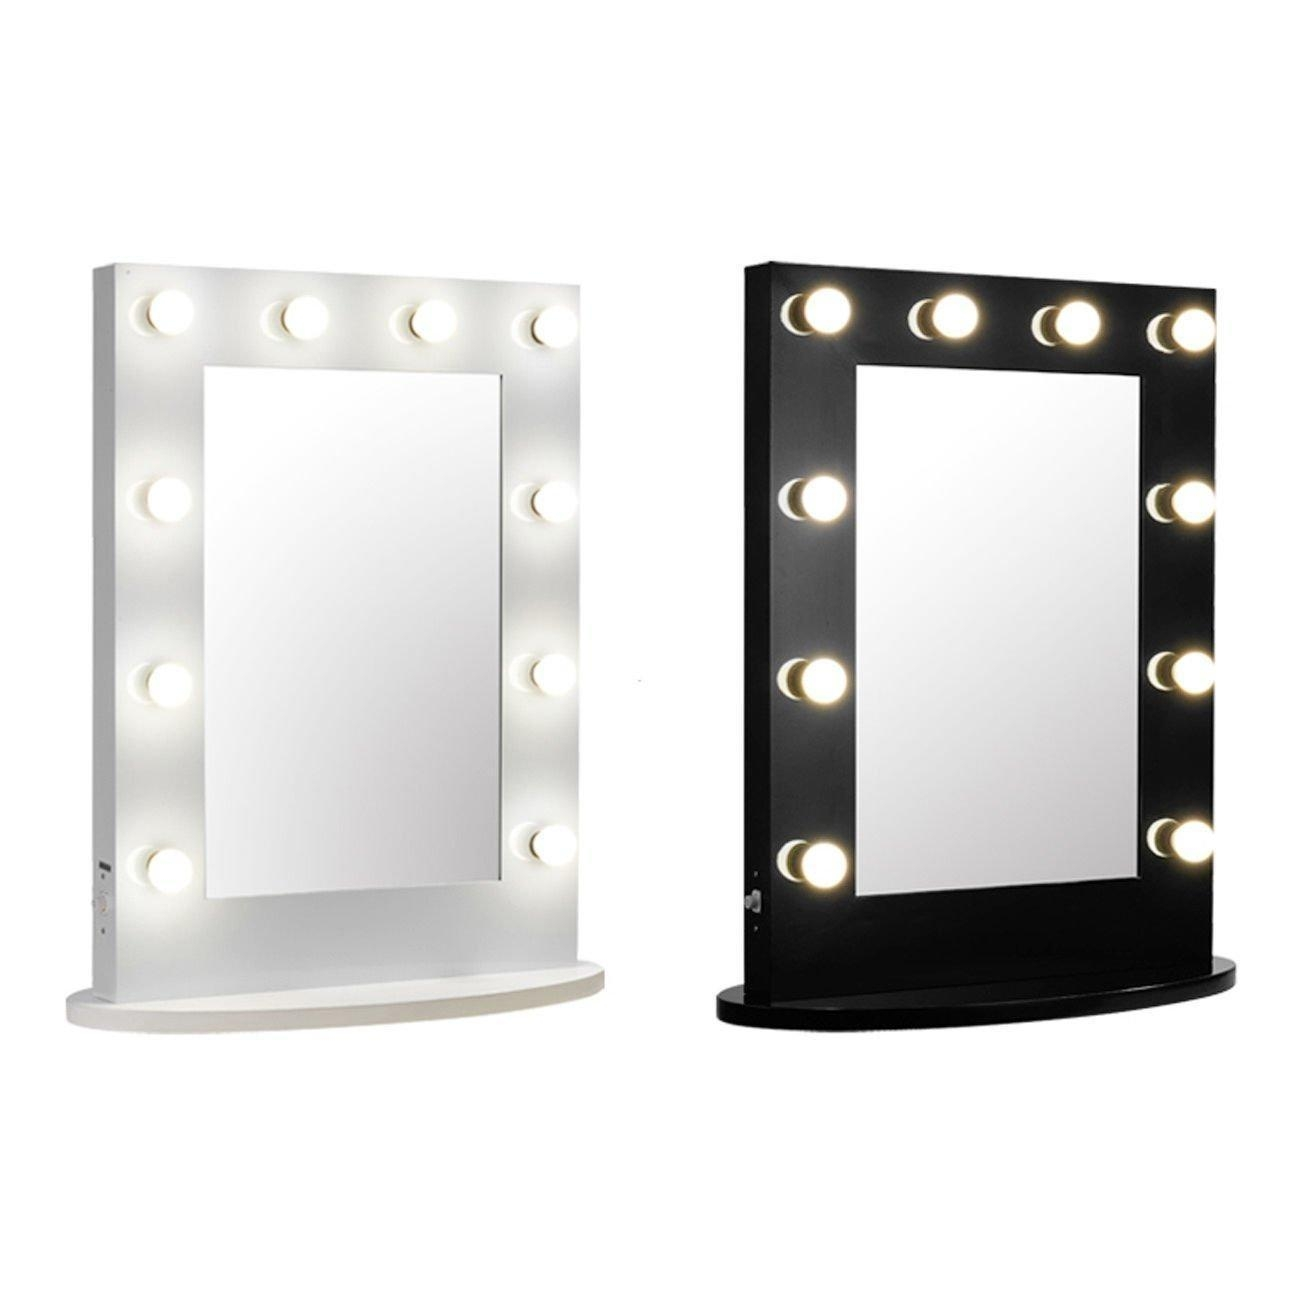 Wall Mount Magnifying Mirror With Light 138 Stunning Decor With W In Mirror Wall Light (Image 20 of 20)